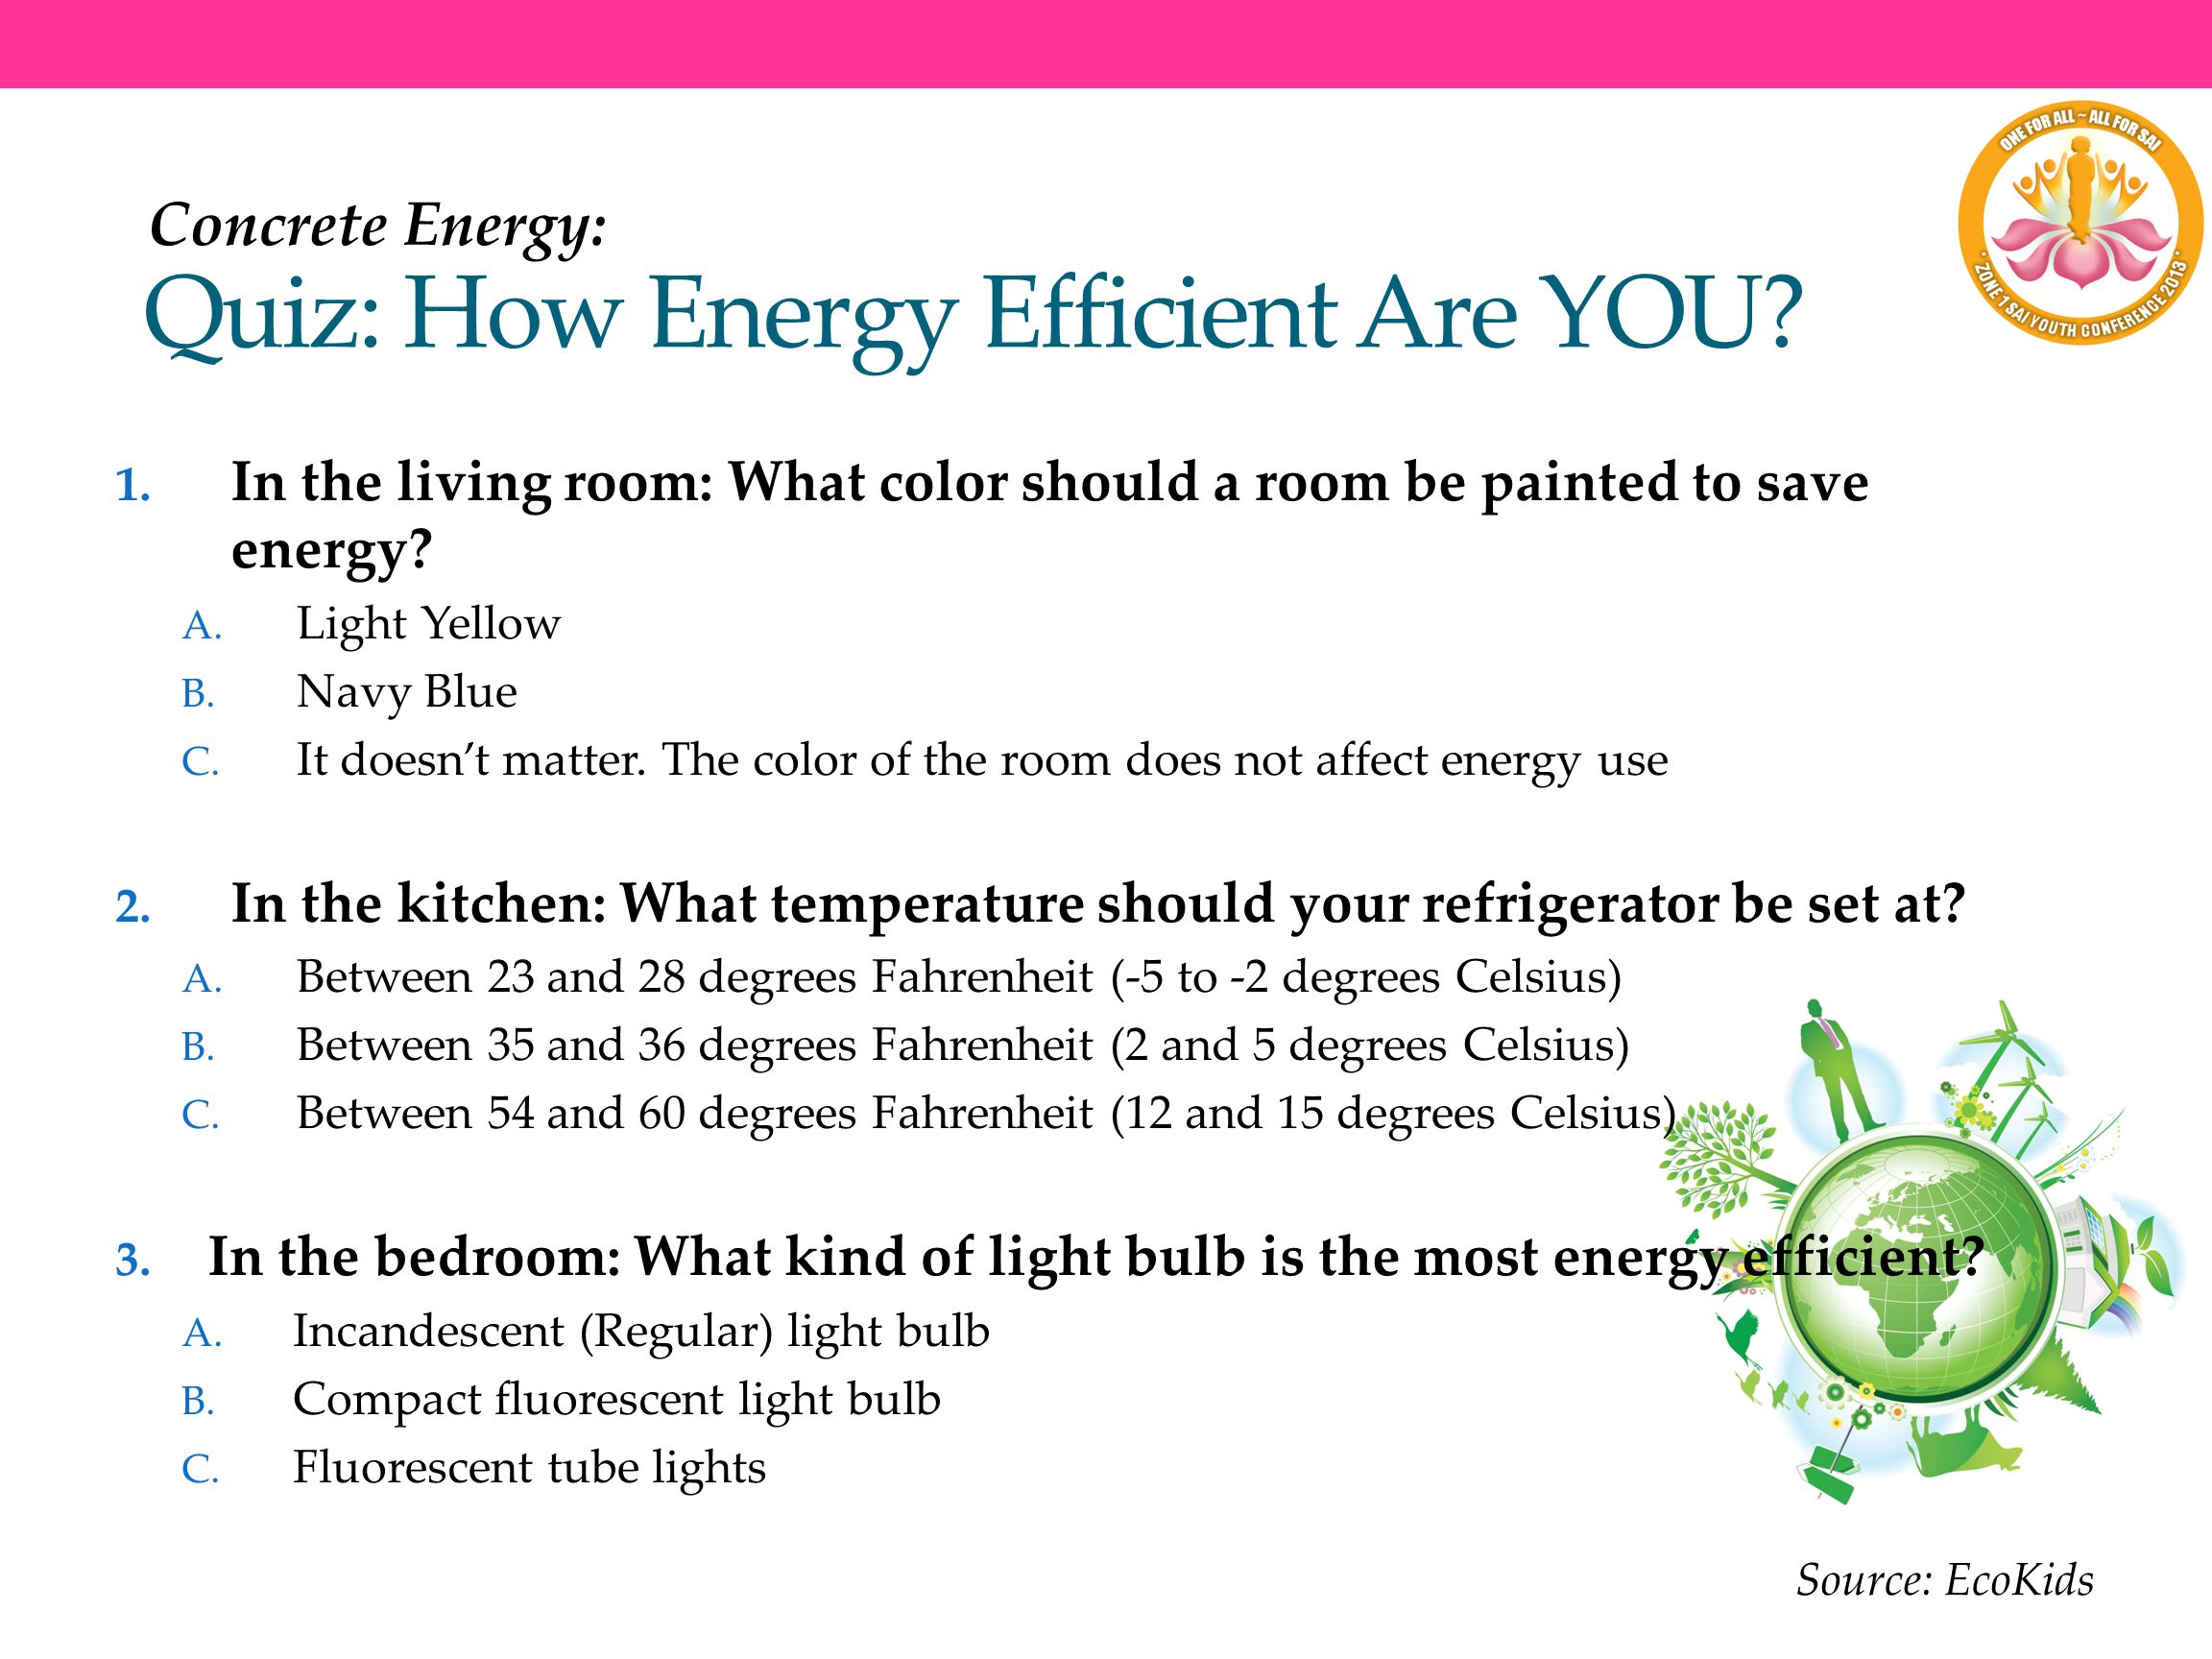 Quiz: How Energy Efficient Are YOU